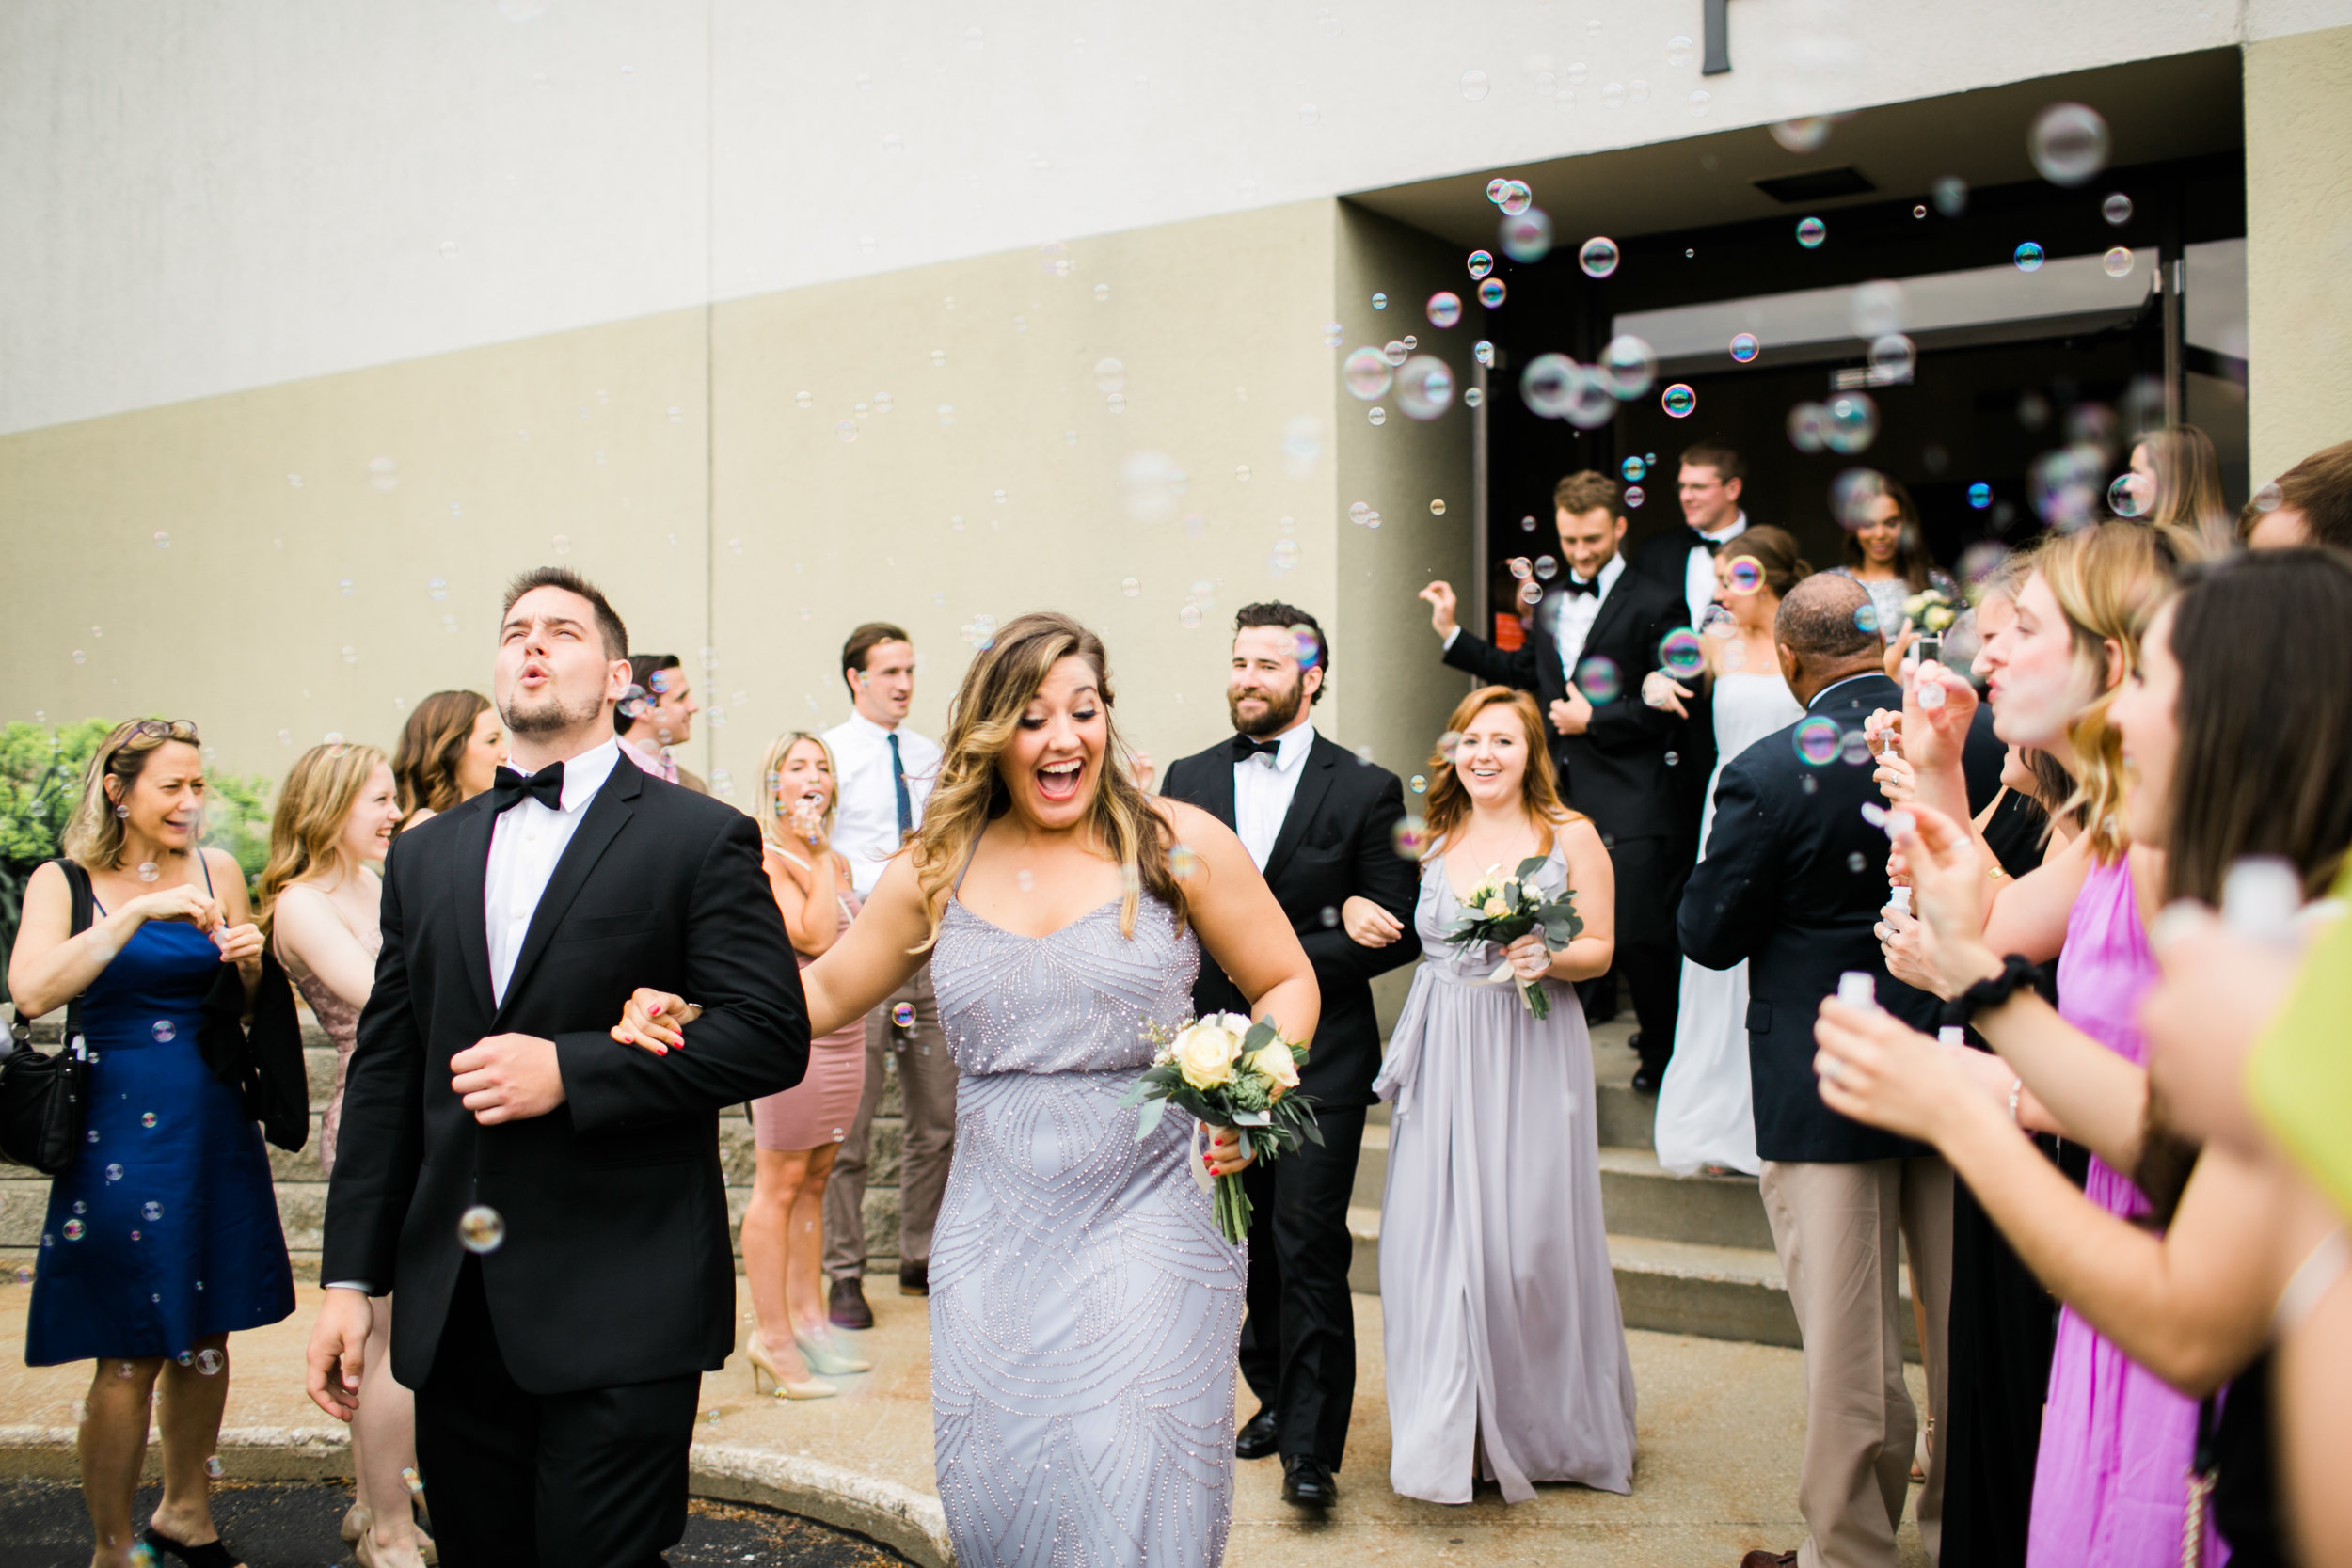 mayden_photography_weddings-64.jpg